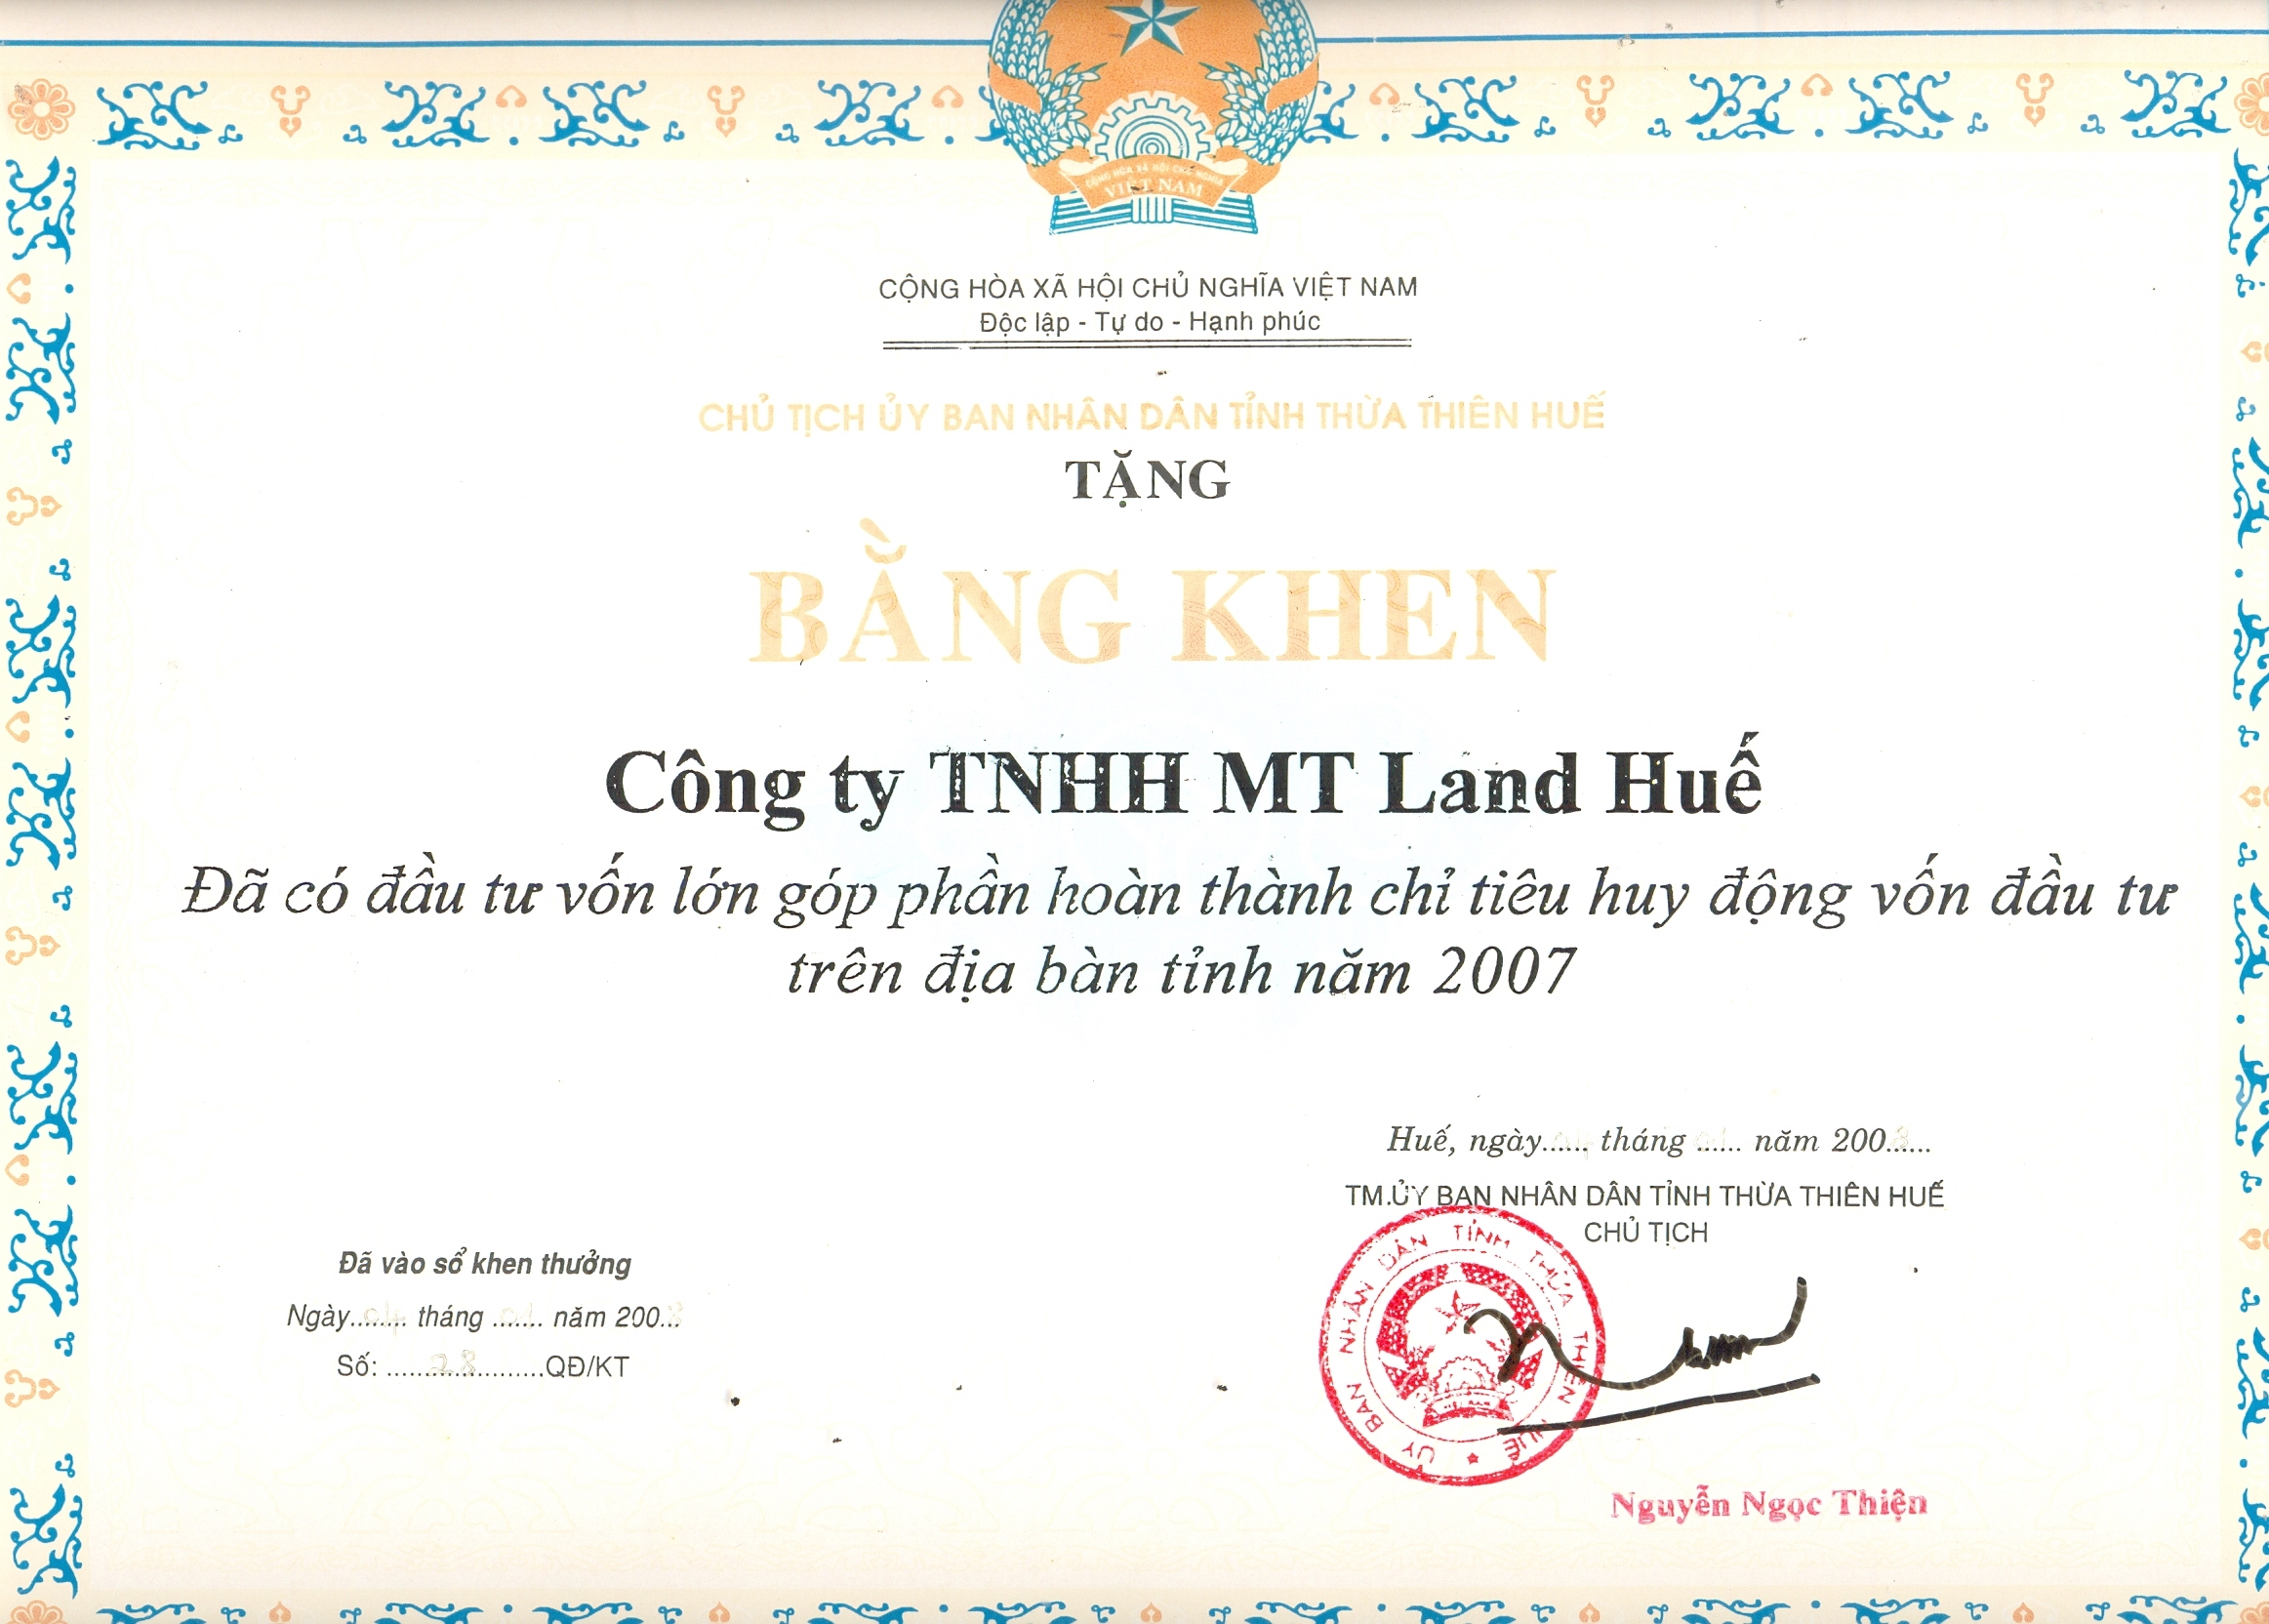 cong ty tnhh mt land hue 2008